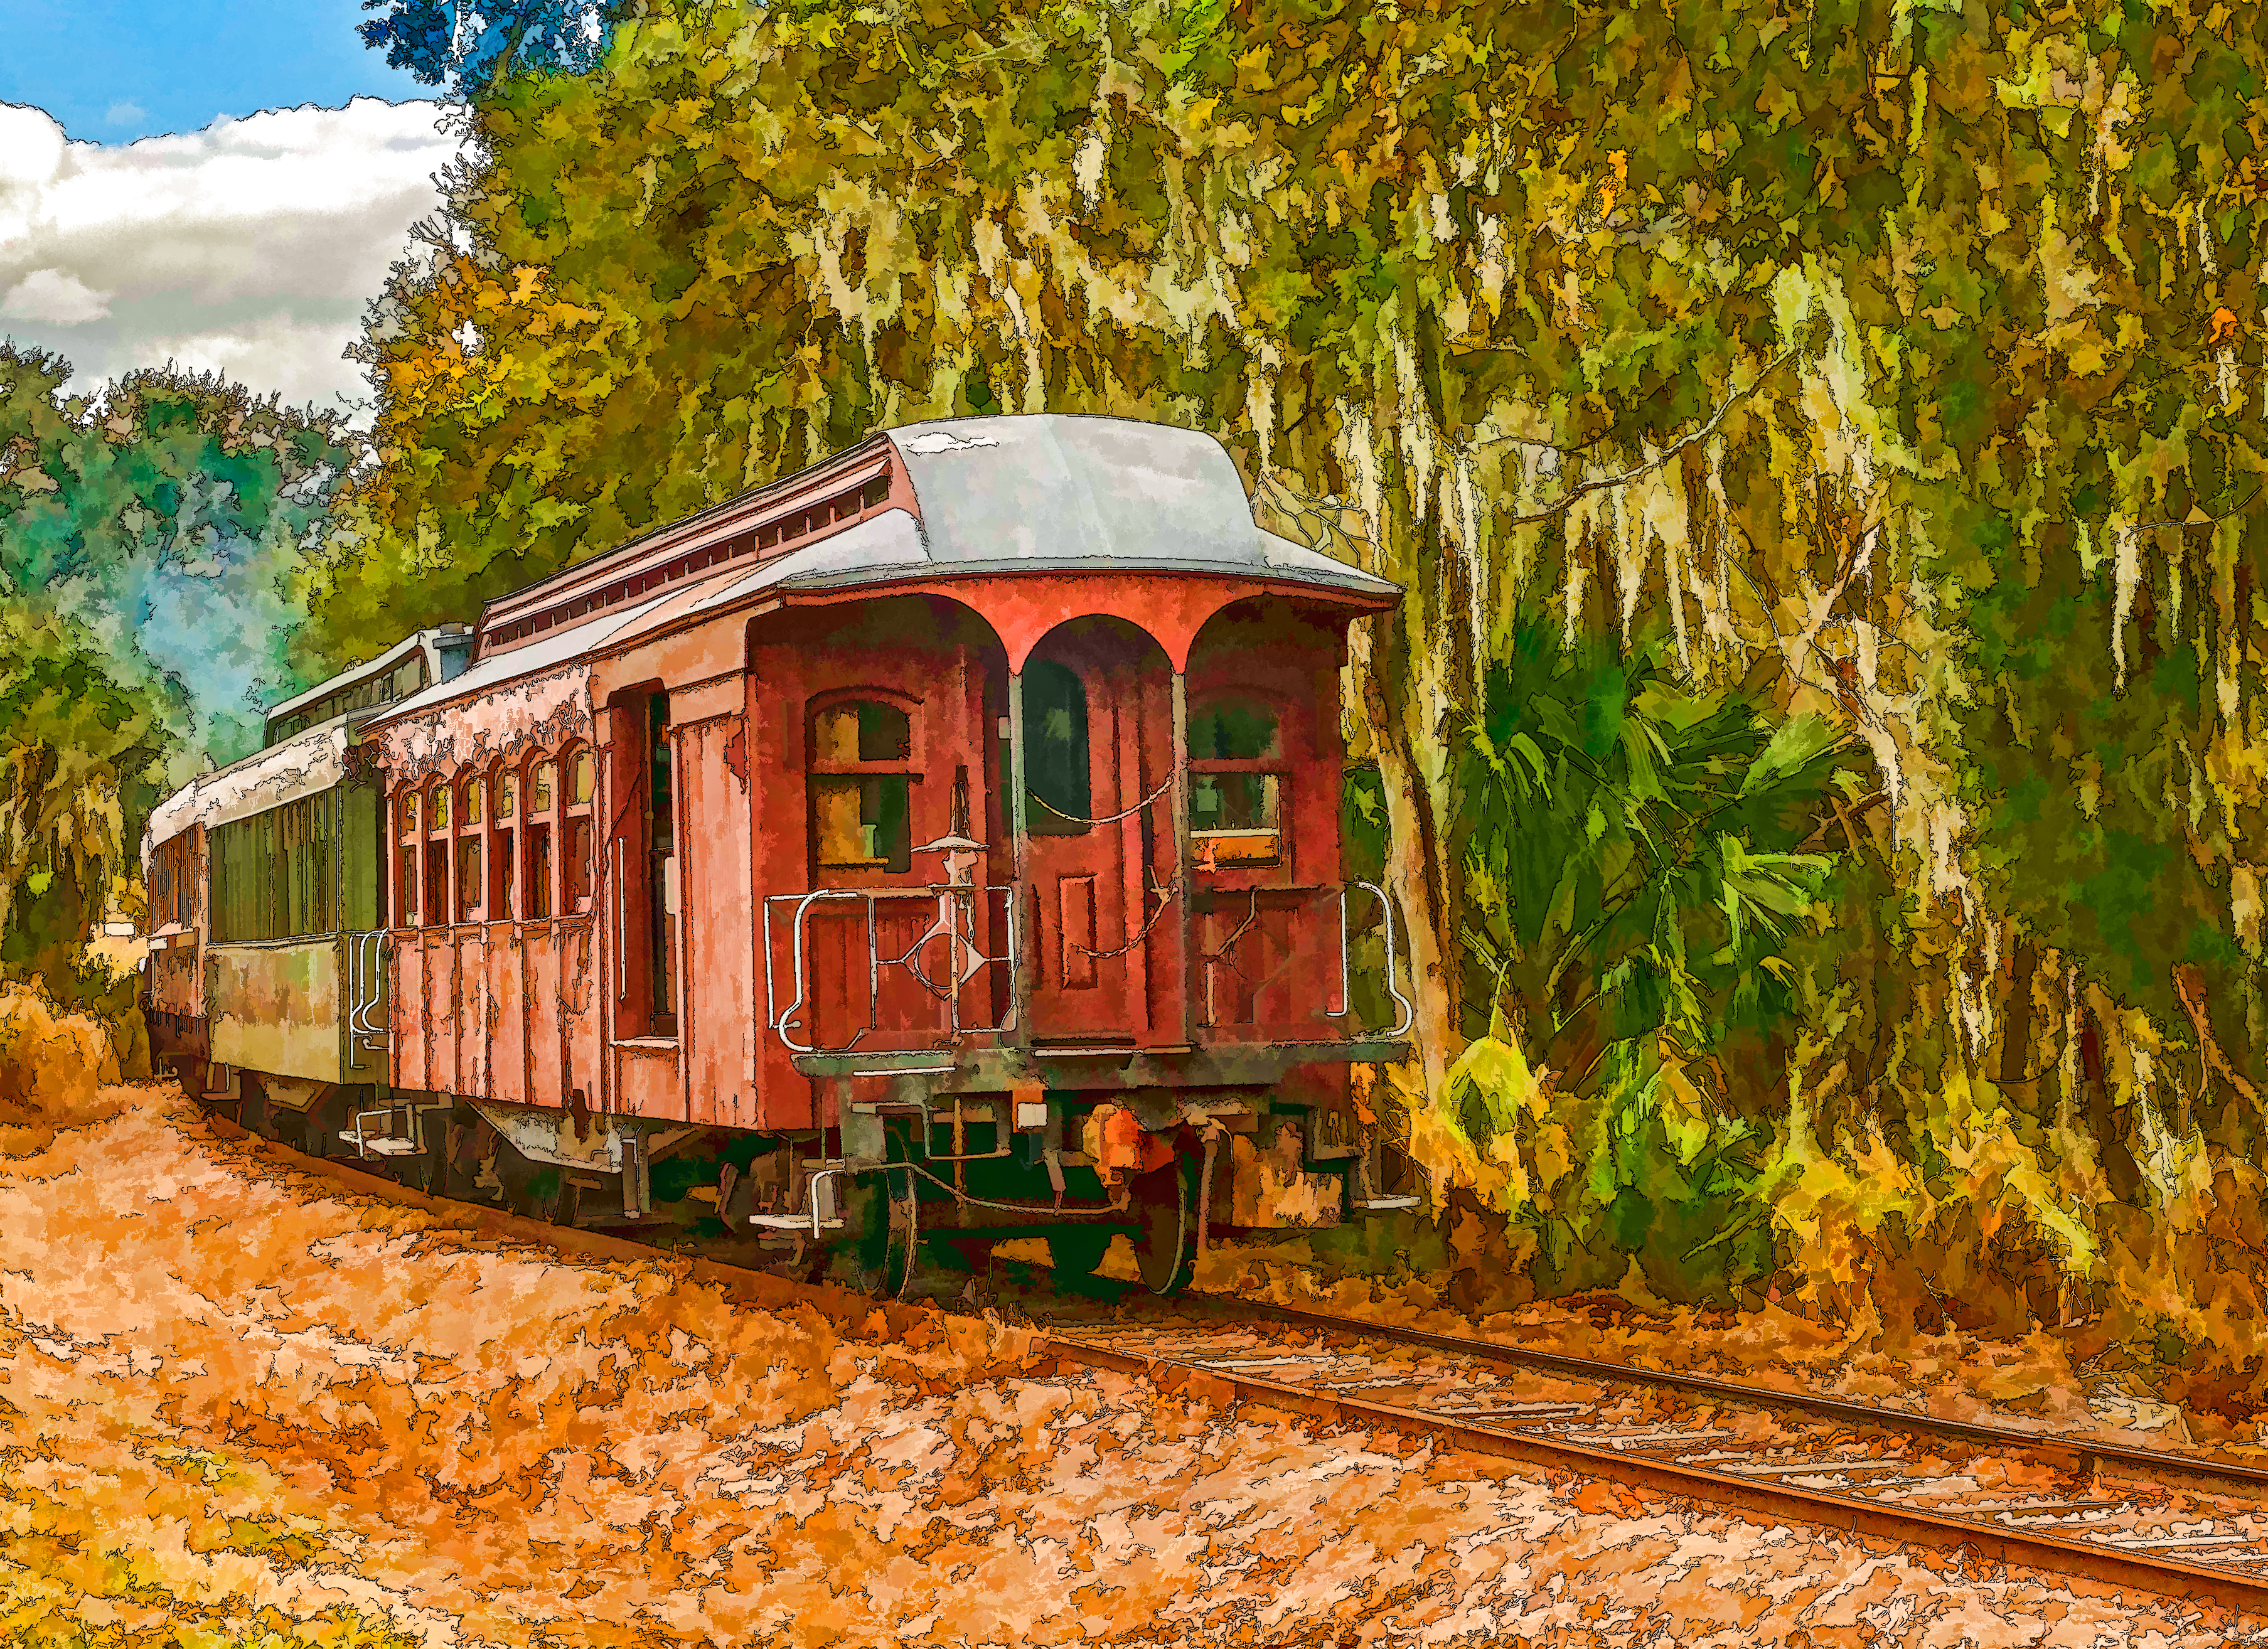 Cannonball Caboose